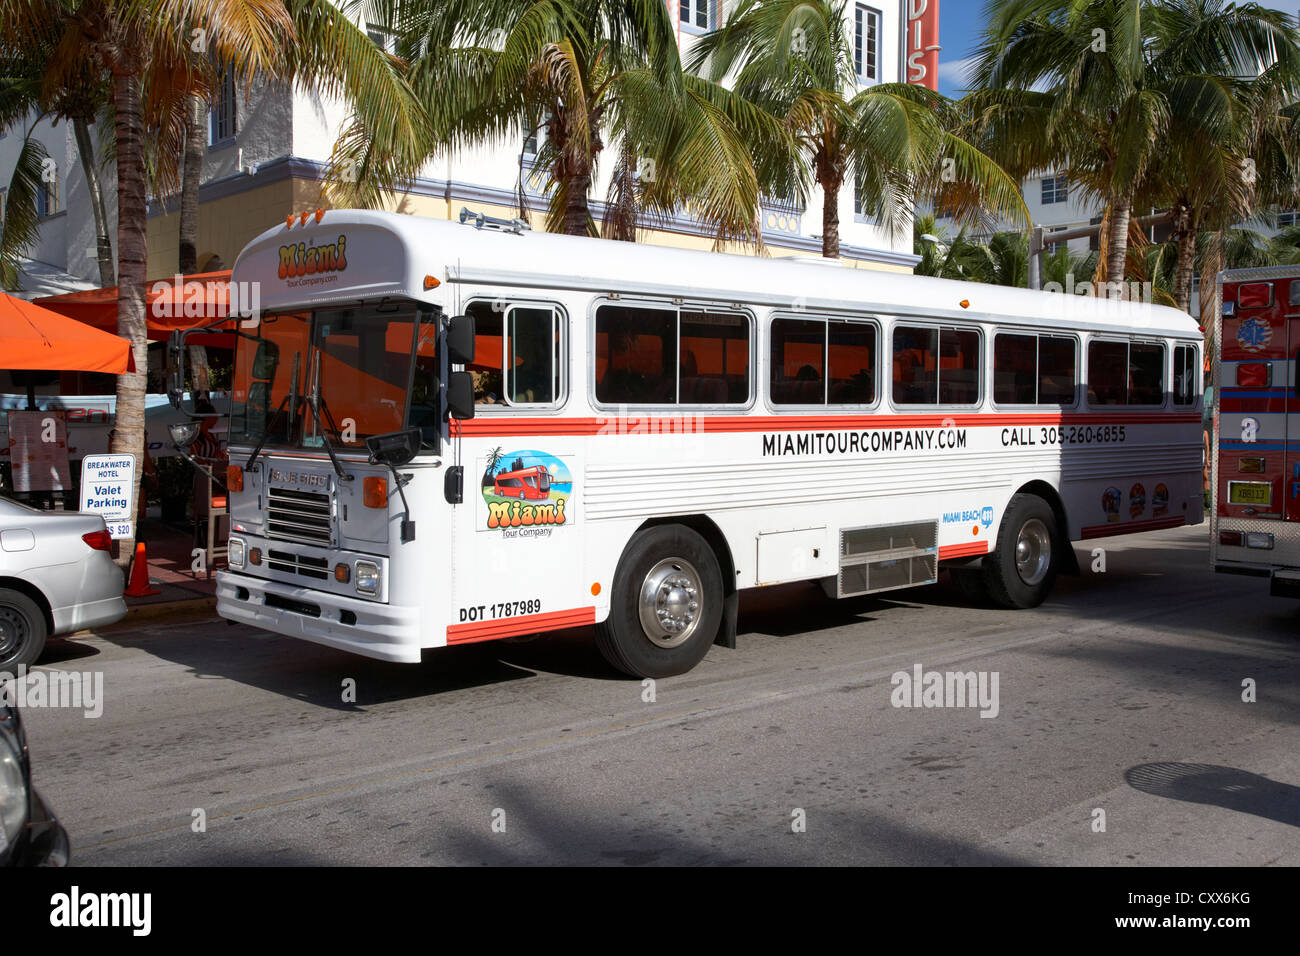 Miami Tour Company Tourist Bus Tours South Beach Florida Usa Stock - Bus tours usa